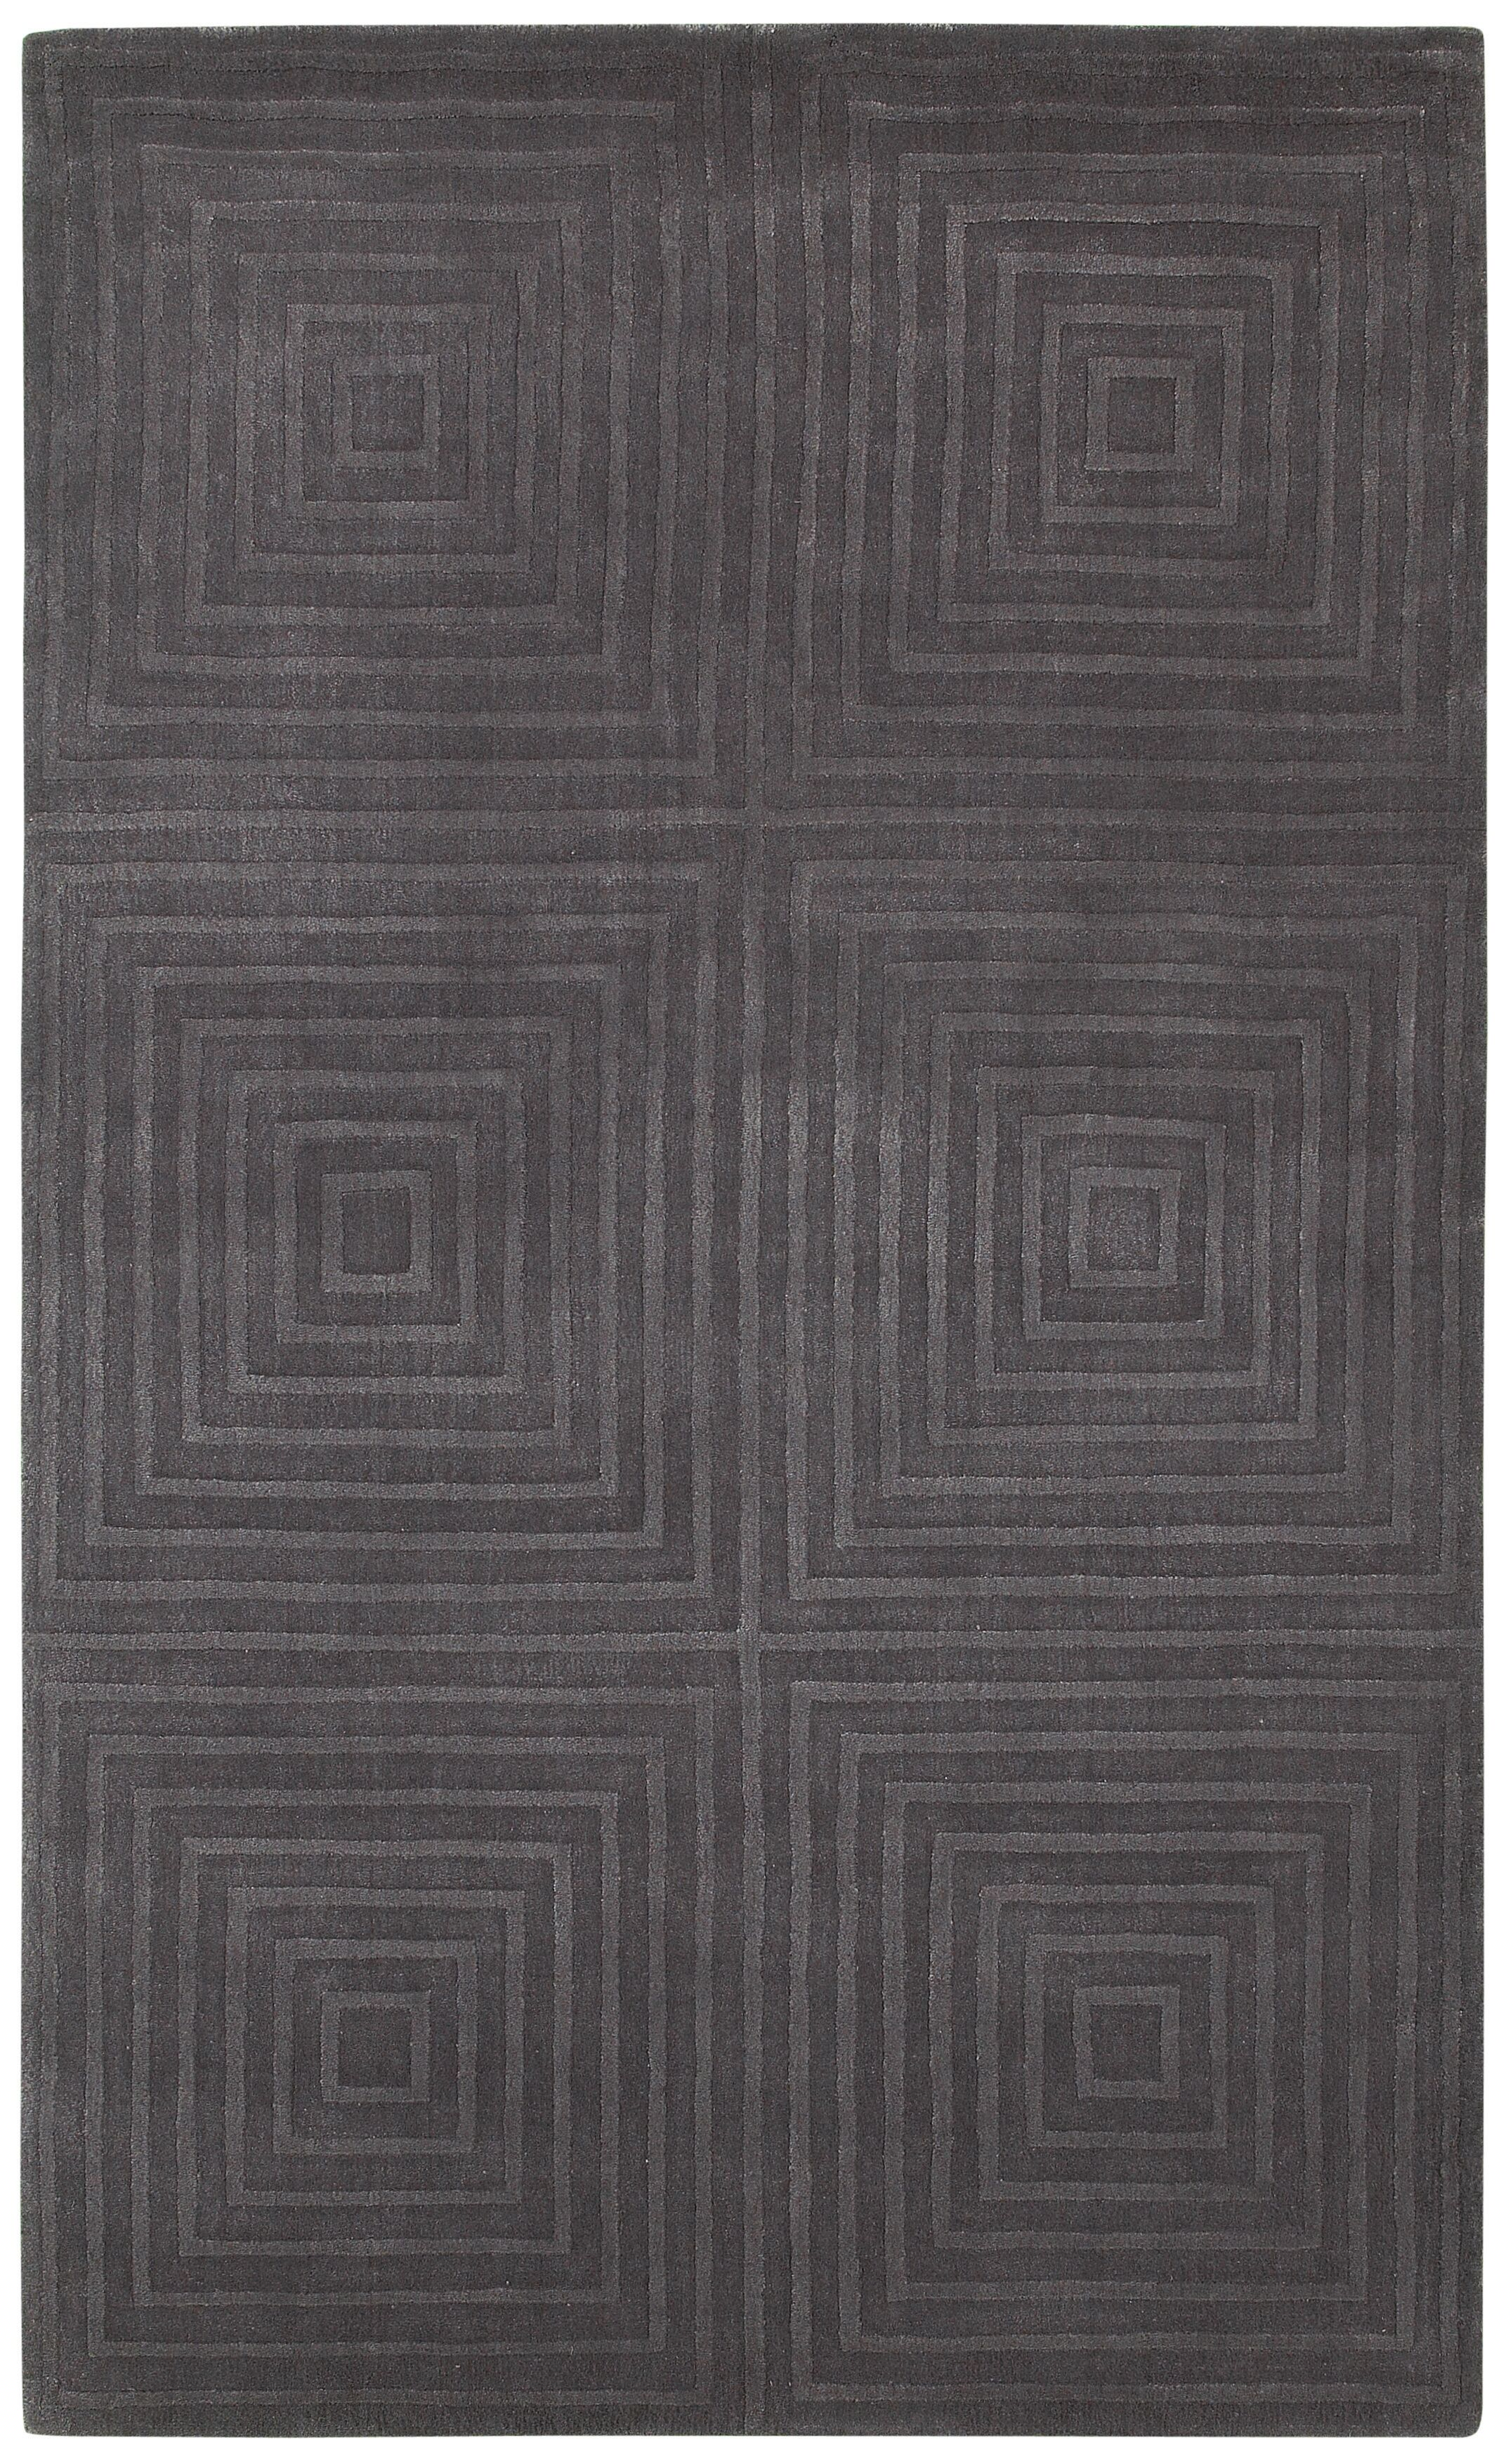 Amparo Hand-Loomed Brown Area Rug Rug Size: Rectangle 8' x 10'